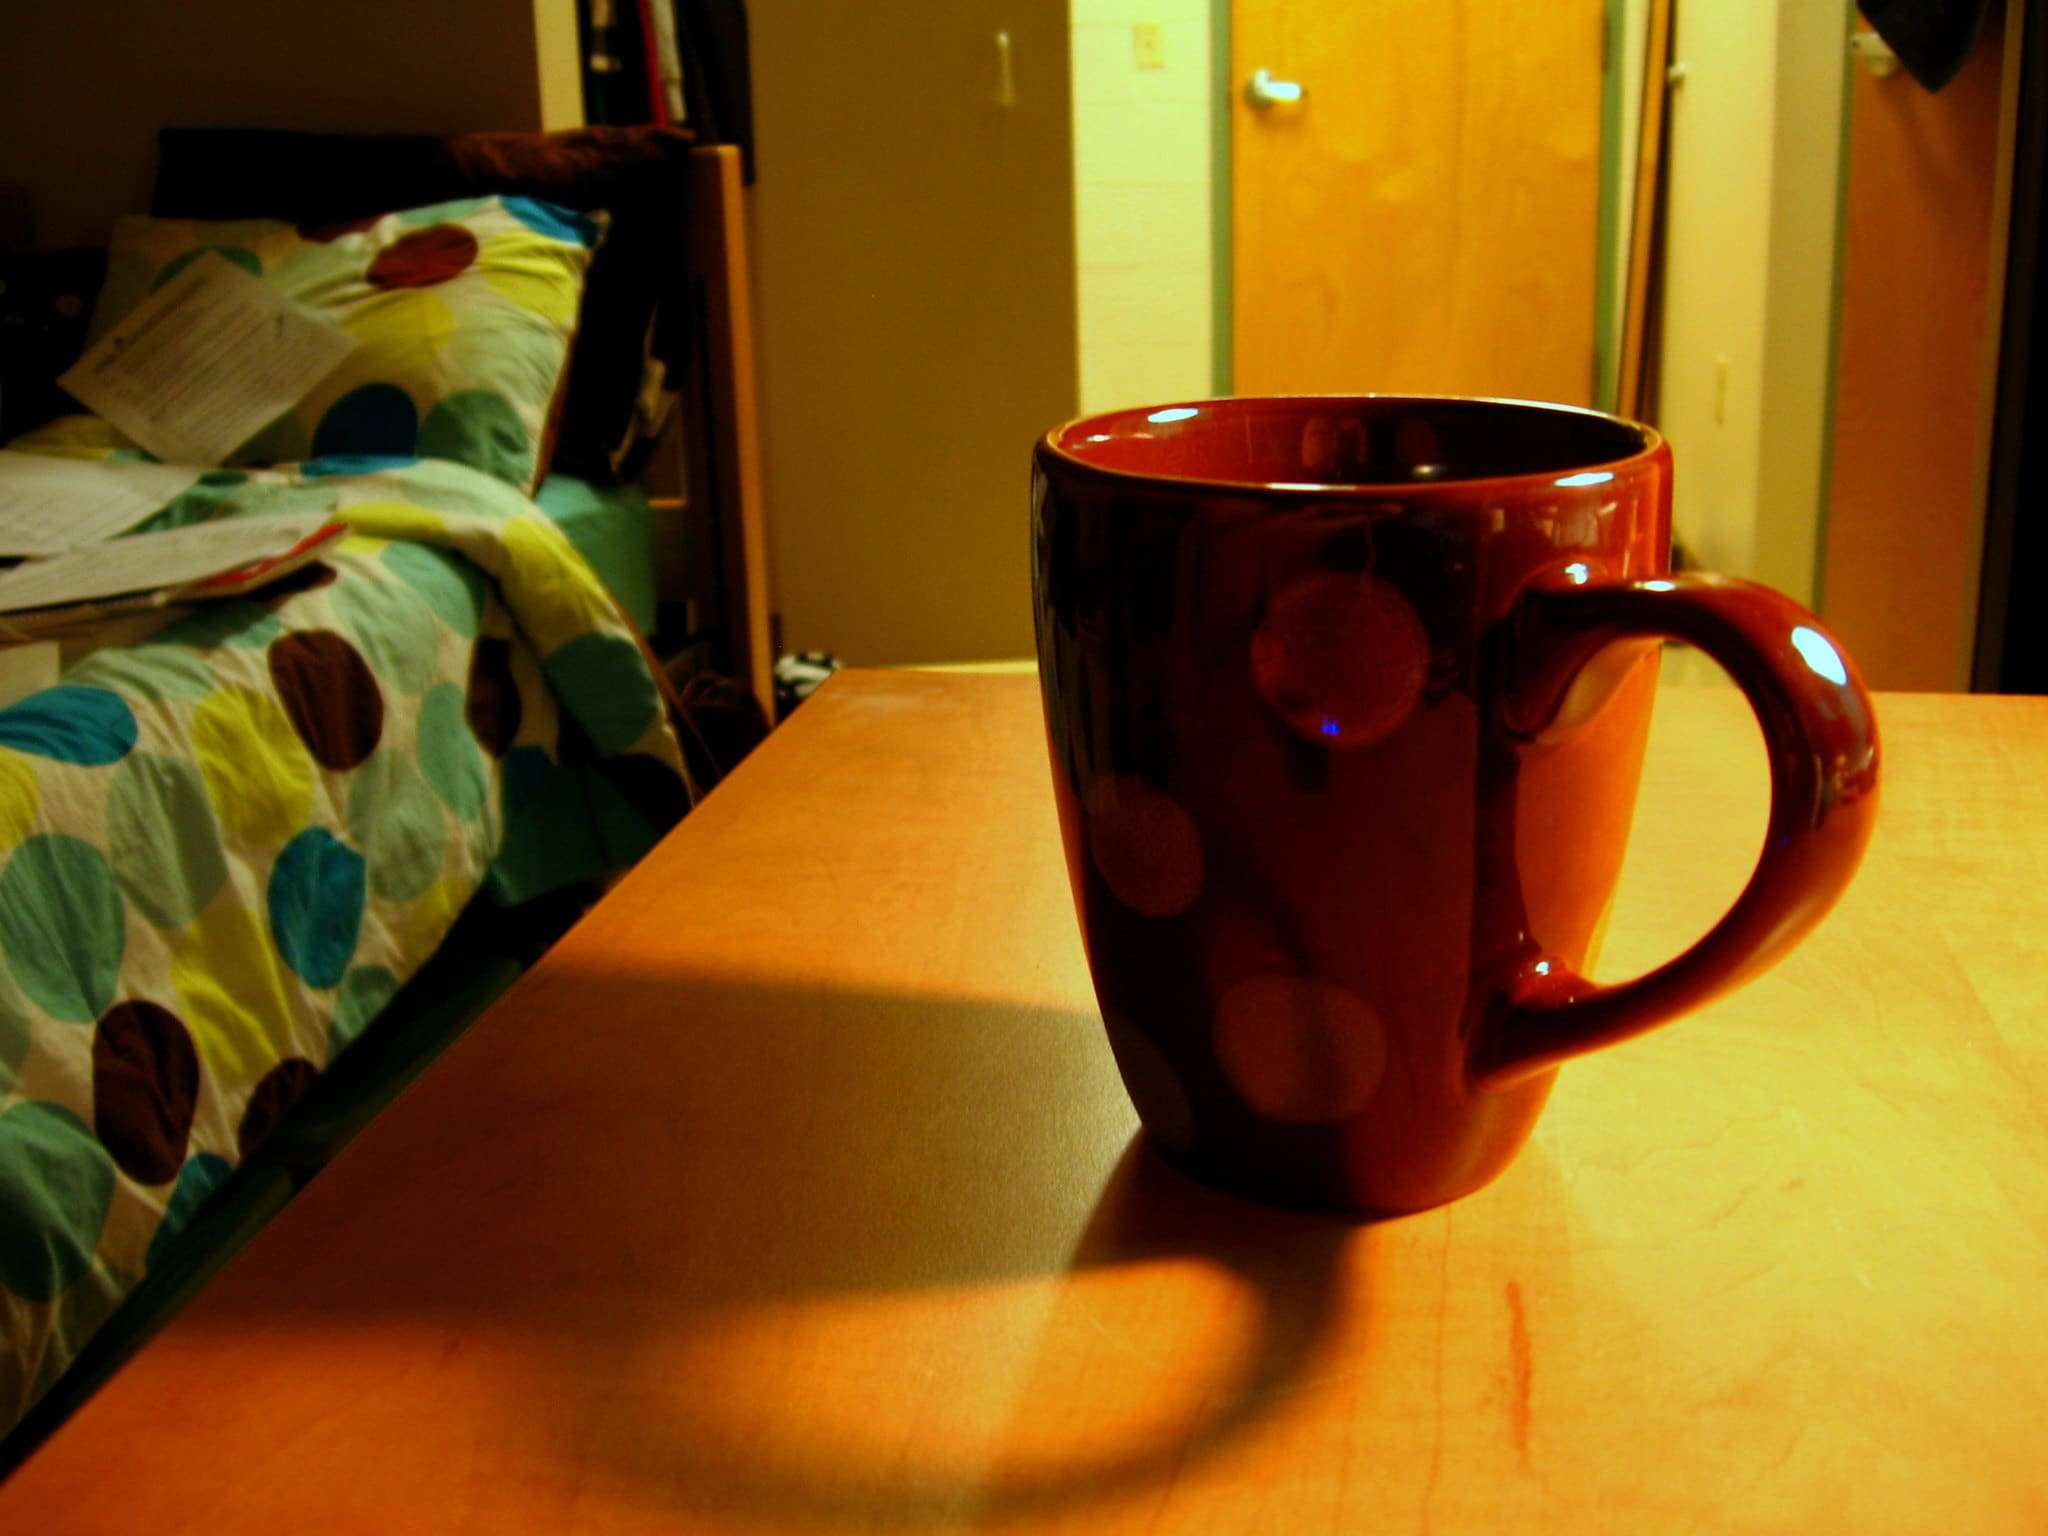 T Ching Classics: Tea and Sleep - Photo of a mug on a nightstand next to a bed